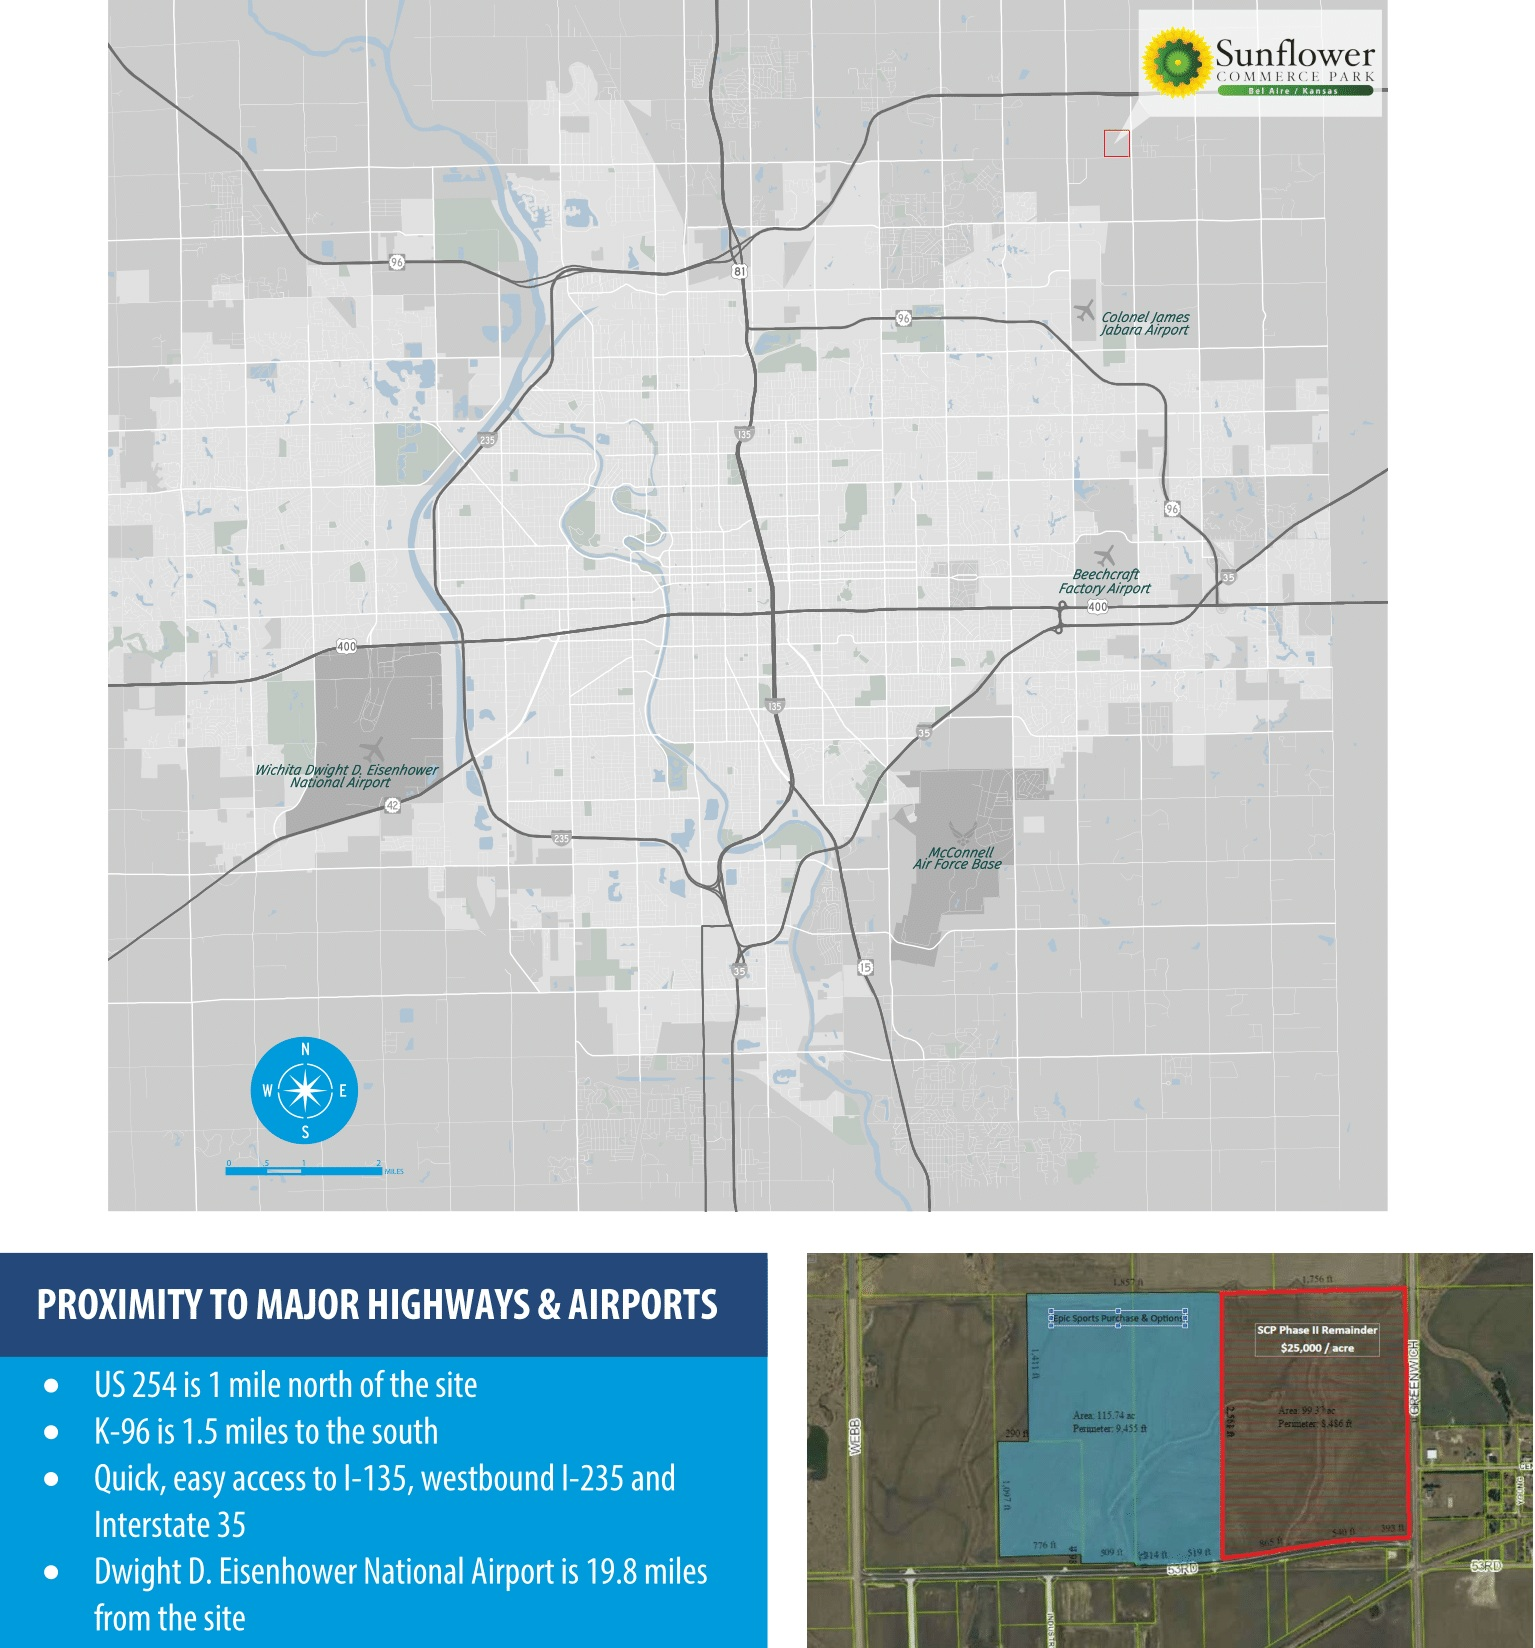 ec5704dc51070 Located near the burgeoning tech sector of Wichita, Sunflower Park is poised  to become a magnet for medical technology and advanced materials  manufacturers.